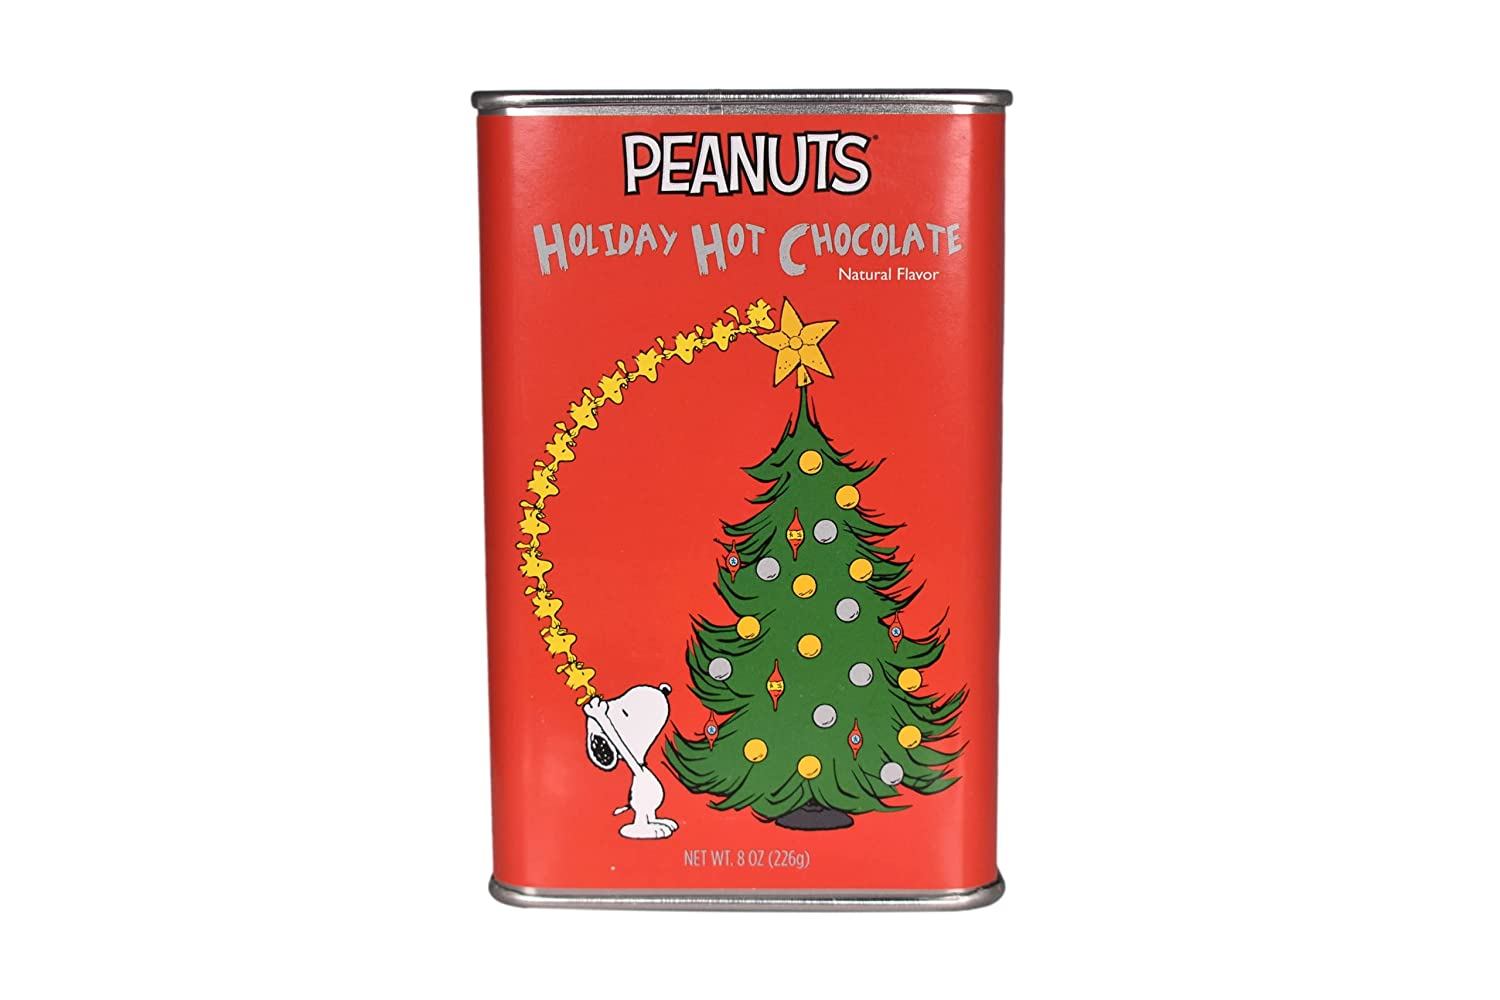 Max 61% OFF McStevens Hot Cocoa Peanuts Snoopy Star Christmas Tin Tree and Clearance SALE! Limited time!